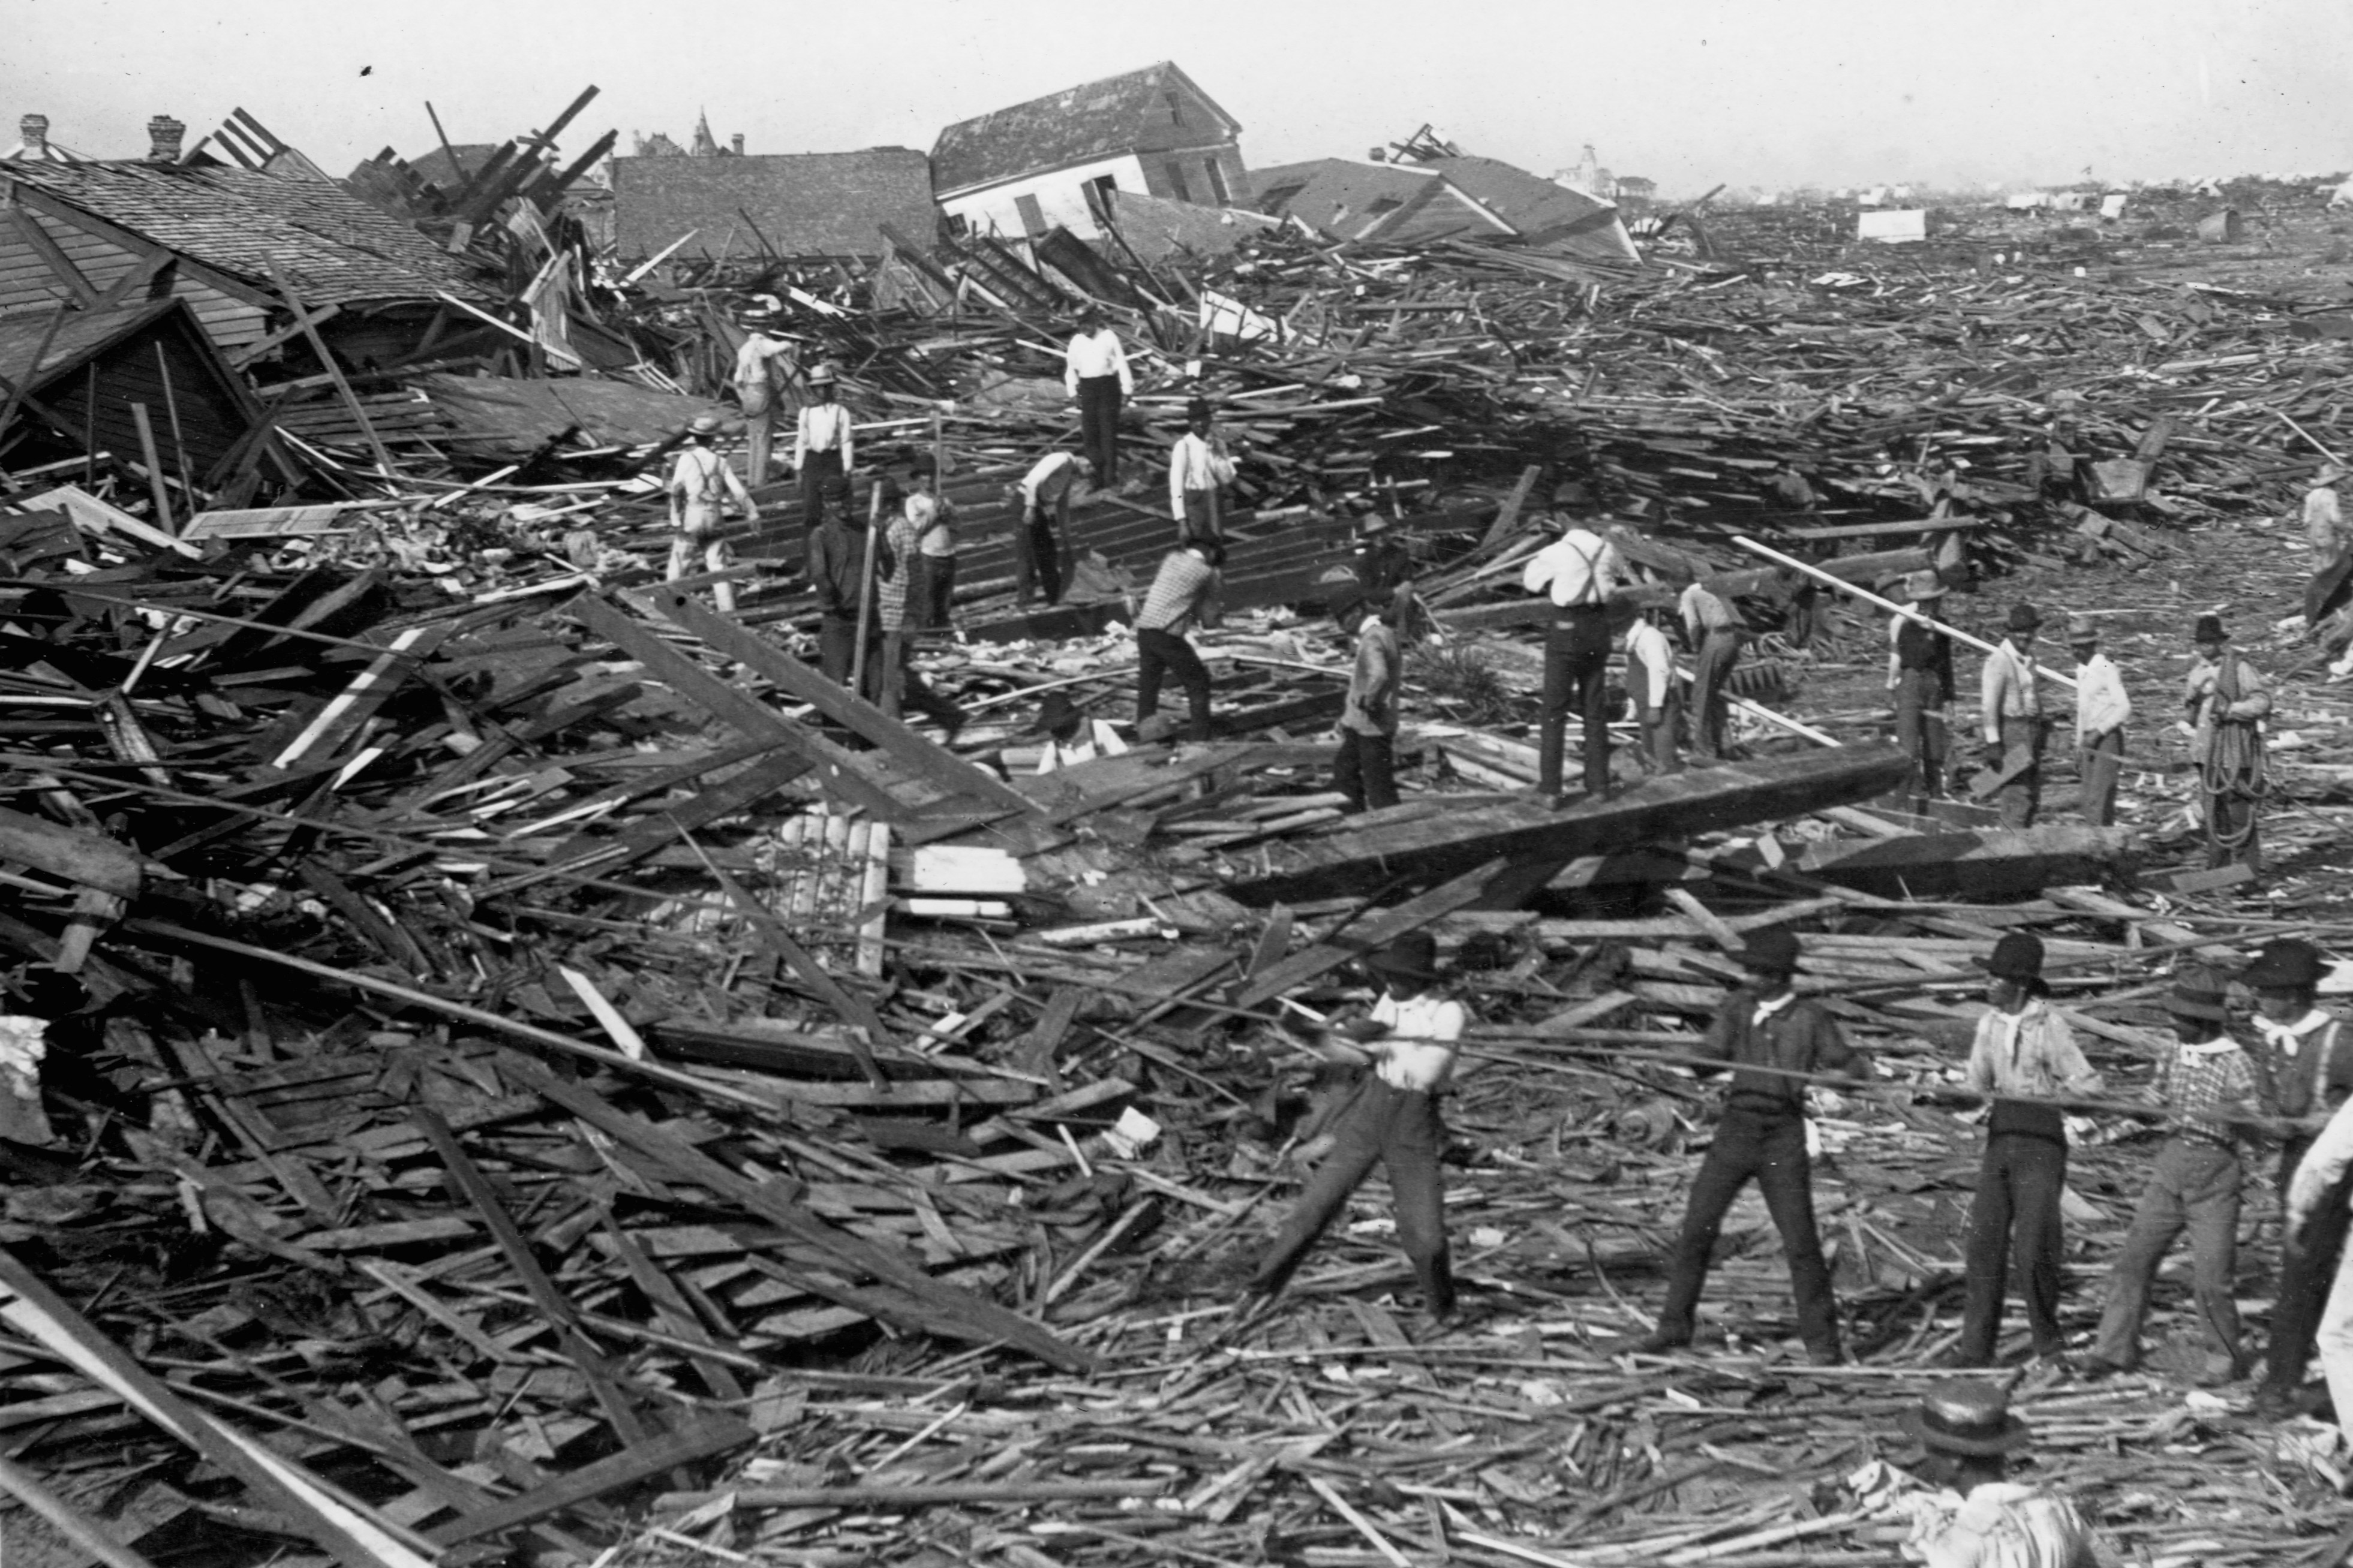 Men use ropes to pull away the debris of houses in order to look for bodies, after the Galveston Hurricane of 1900.